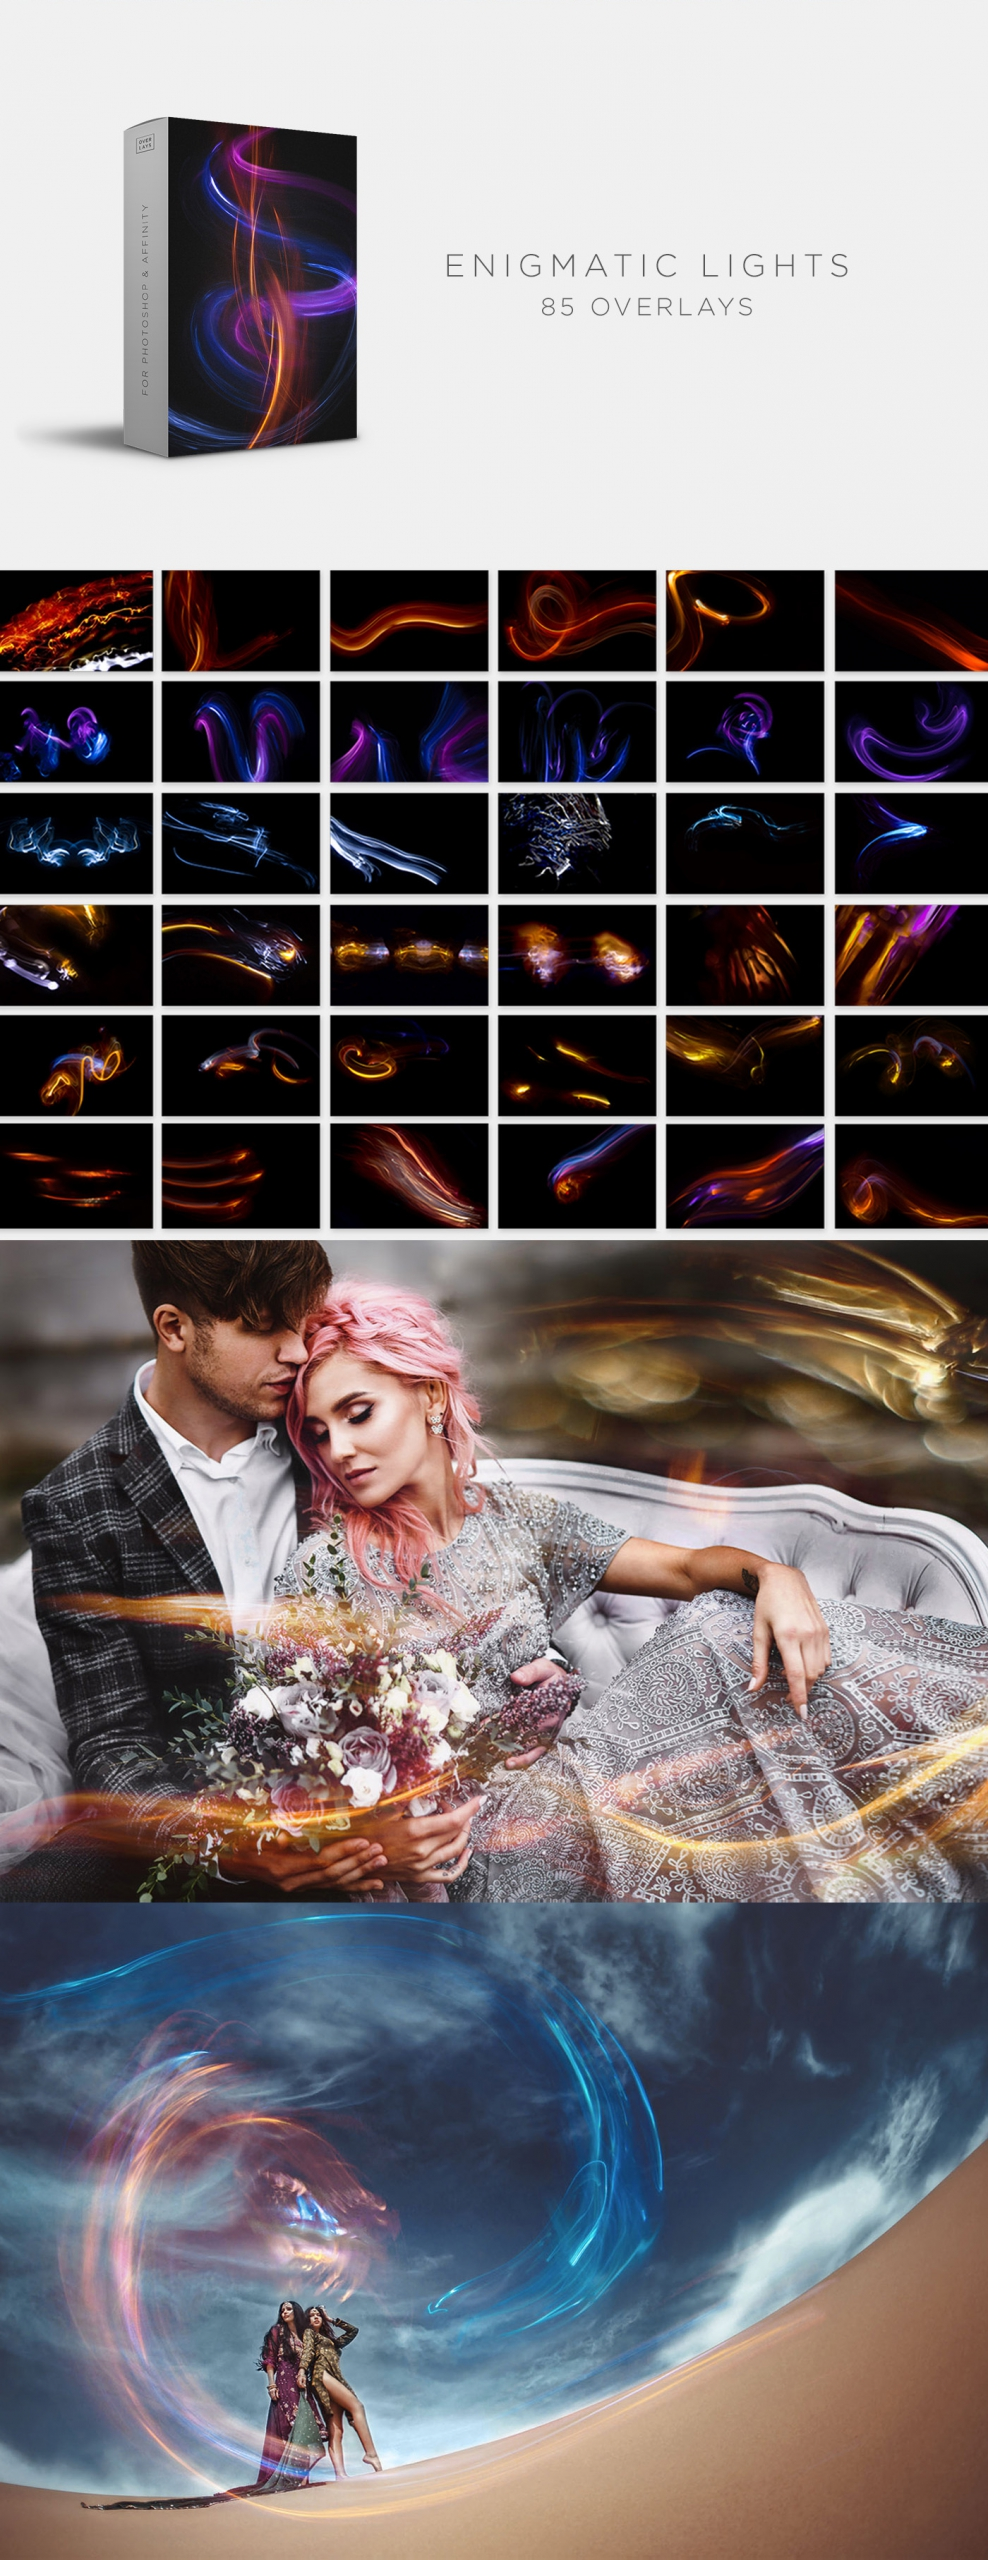 Lights Bundle - 525 Overlays